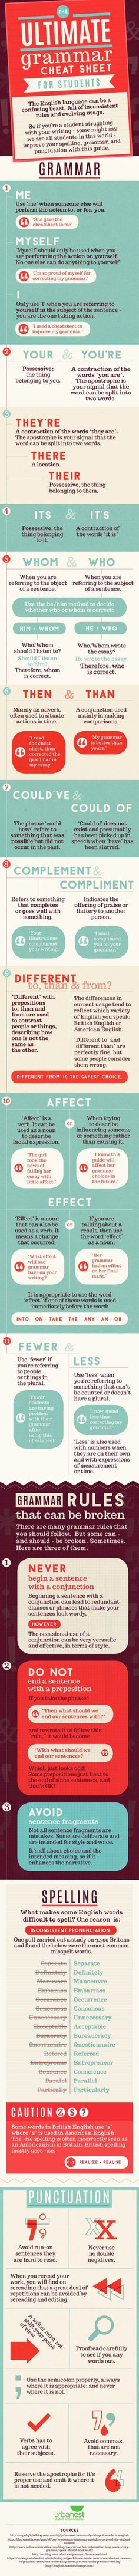 Helpful guide to English grammar, spelling, and punctuation #infographic